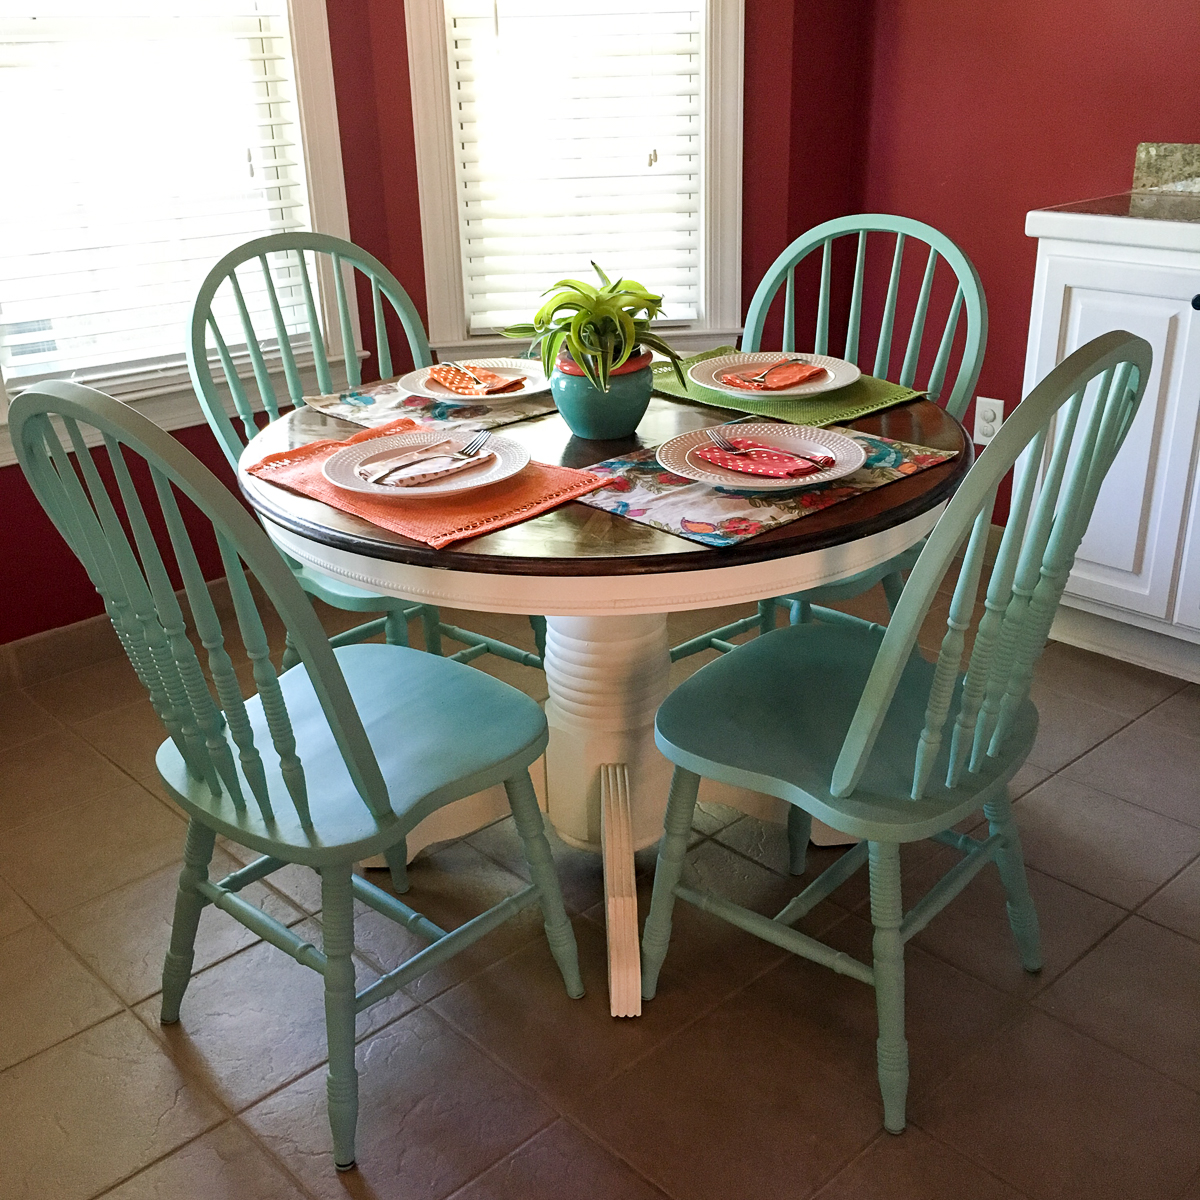 Kitchen Round Table: Turquoise And White Kitchen Table